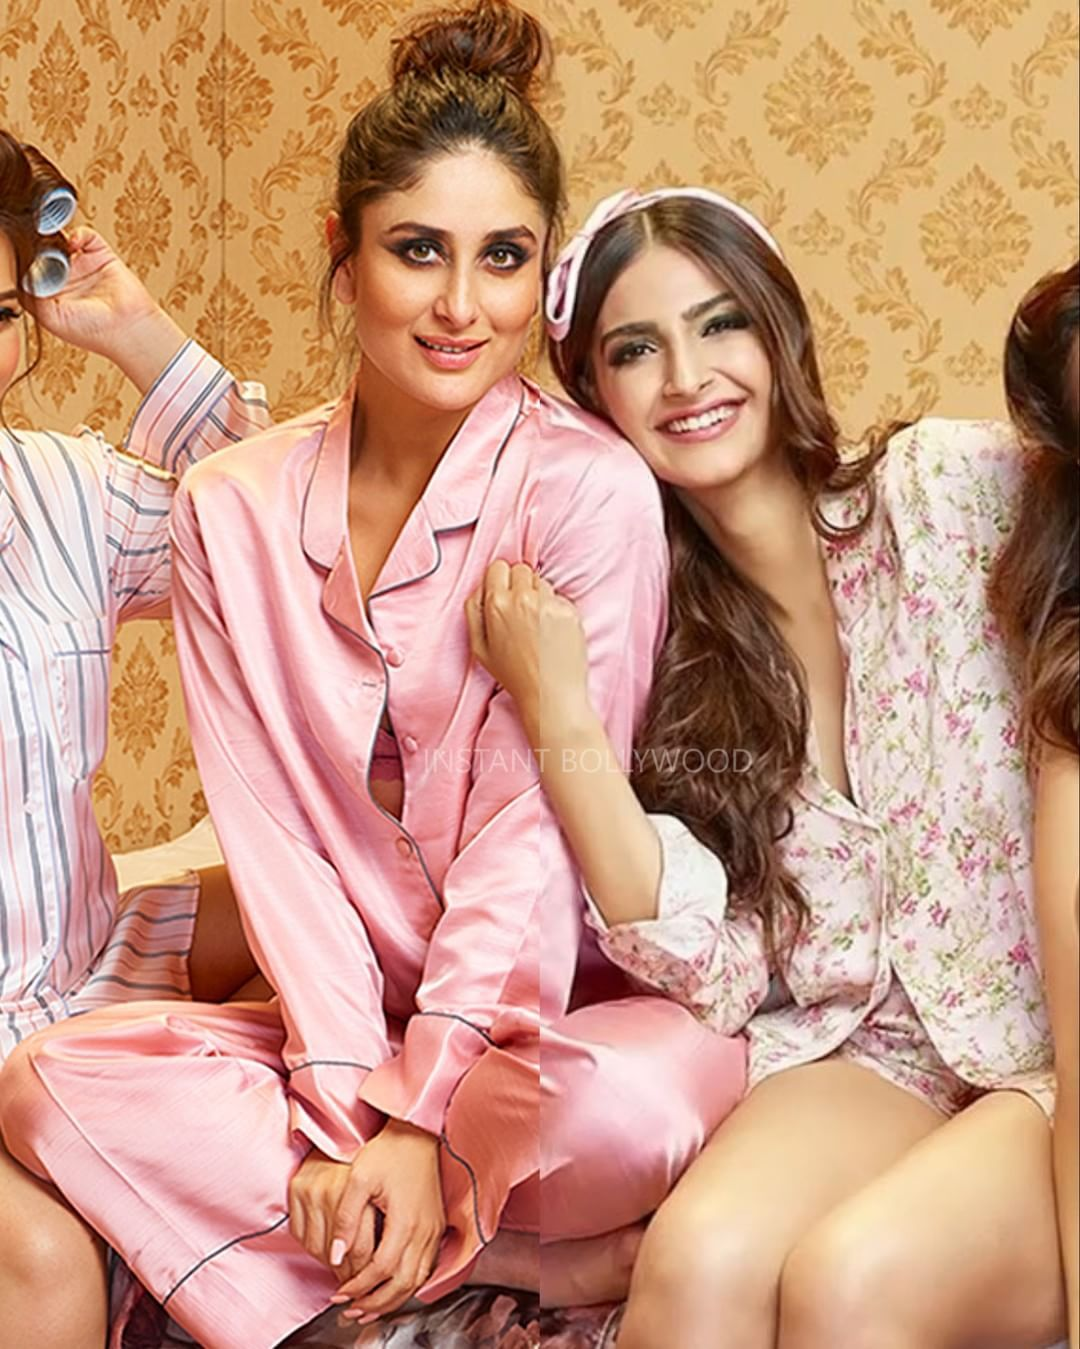 Pin by Sadika Zahid on Collection | Pinterest | Kareena kapoor ...